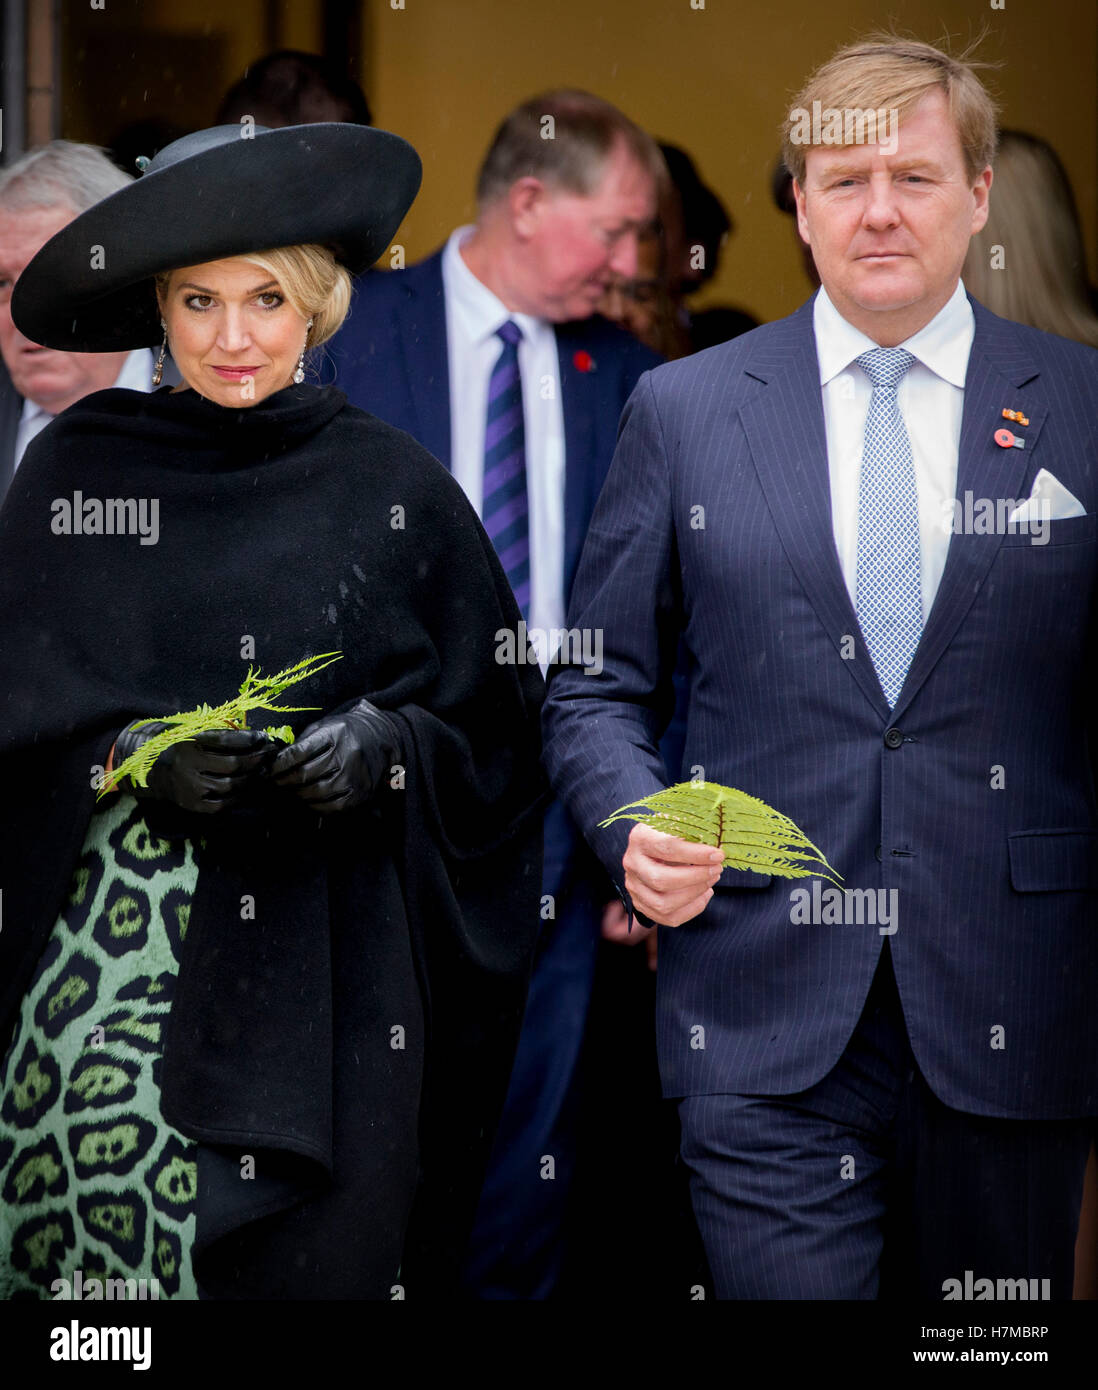 Wellington, New Zealand. 7th Nov, 2016. King Willem-Alexander and Queen Maxima of The Netherlands during the Powhiri - Stock Image